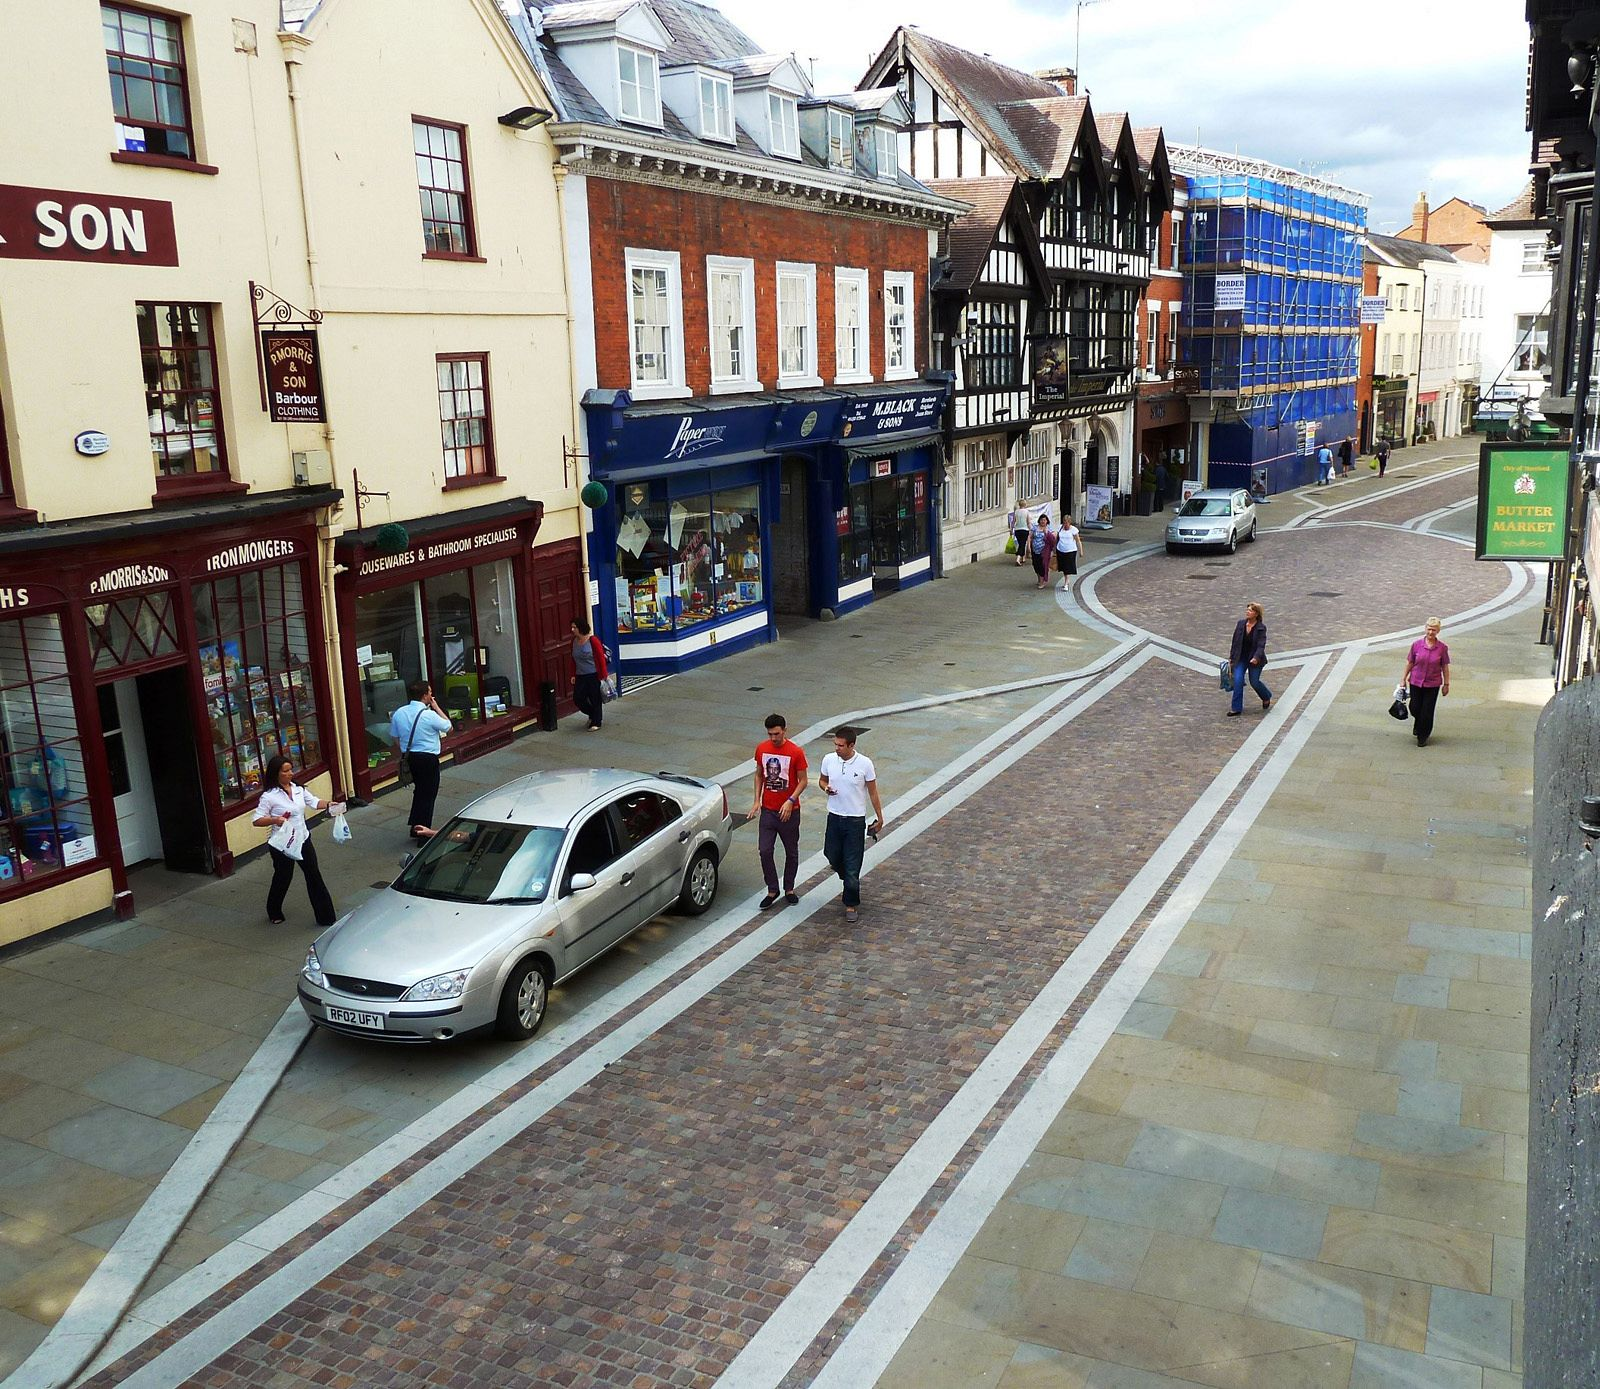 Widemarsh Street, Hereford, after _shared space_. Photo: BHB